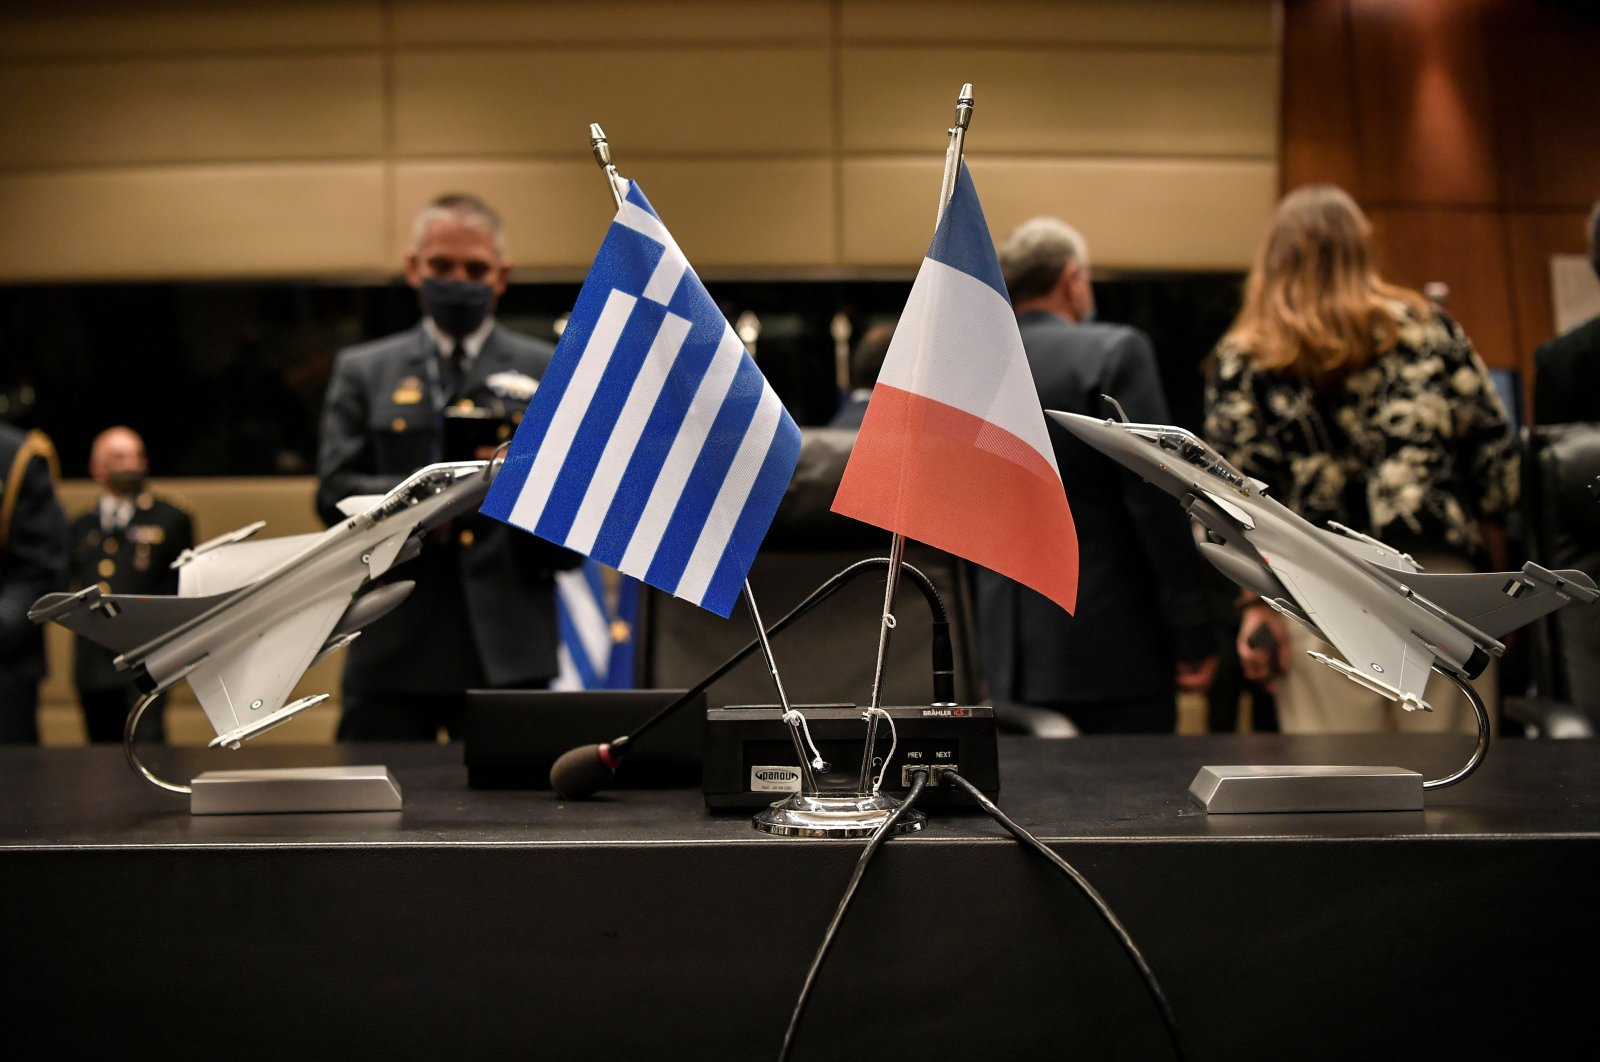 Models of Rafale jets are seen next to Greek and French national flags before the signing of an agreement for the purchase of 18 Dassault-made Rafale fighter jets at the Greek Defence Ministry in Athens, Greece, January 25, 2021. (Reuters Photo)